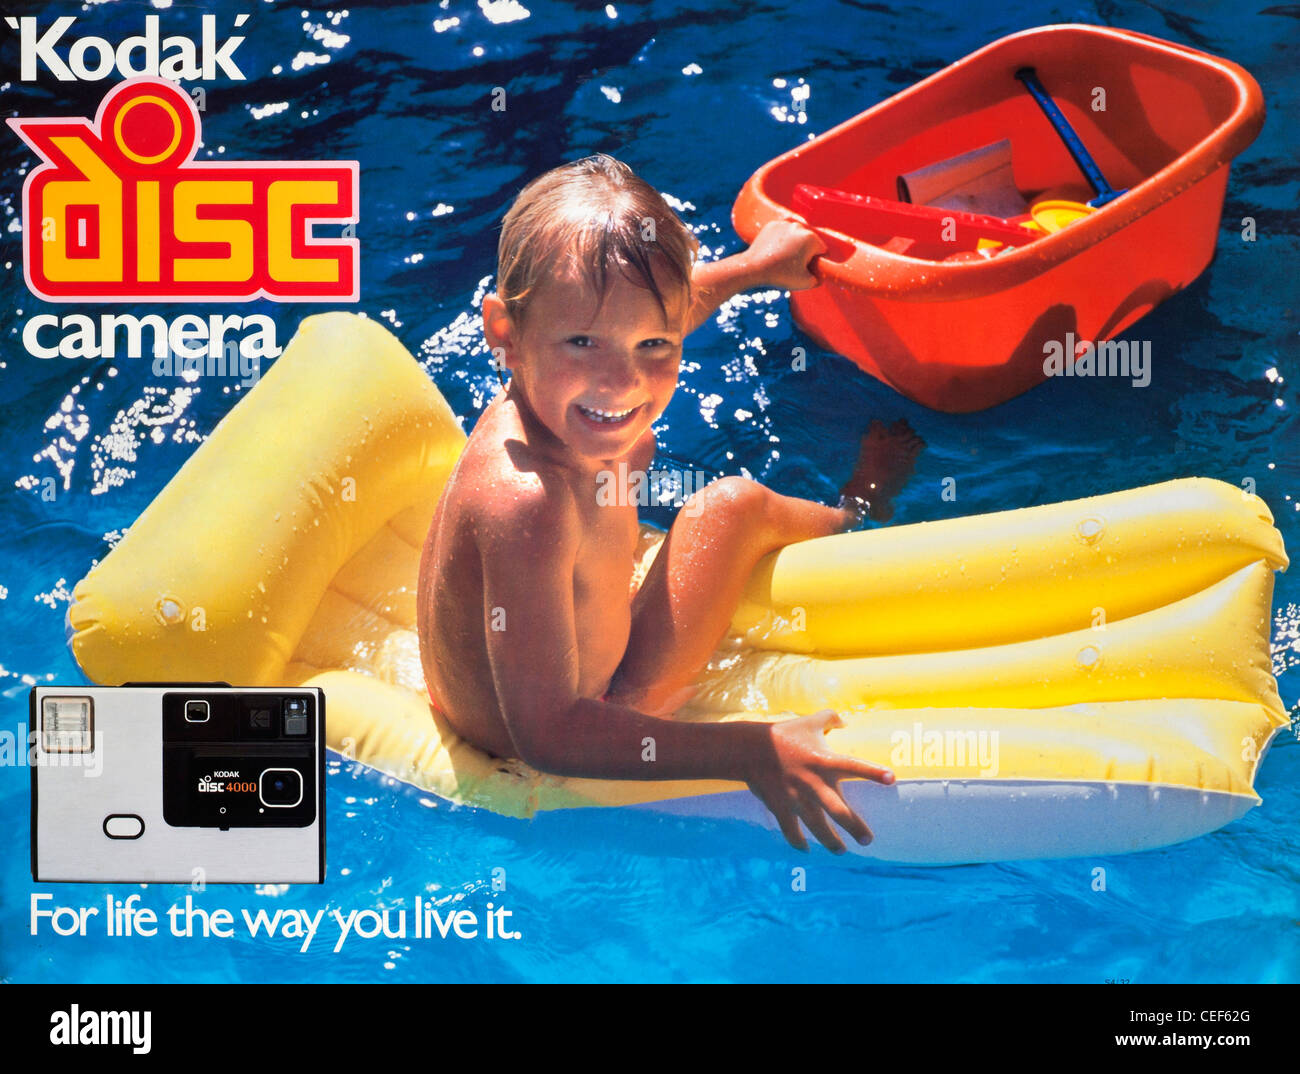 Archive/Timeless 'Kodak moment' ad campaign image 1982 Kodak Disc camera launch with caption ''For - Stock Image